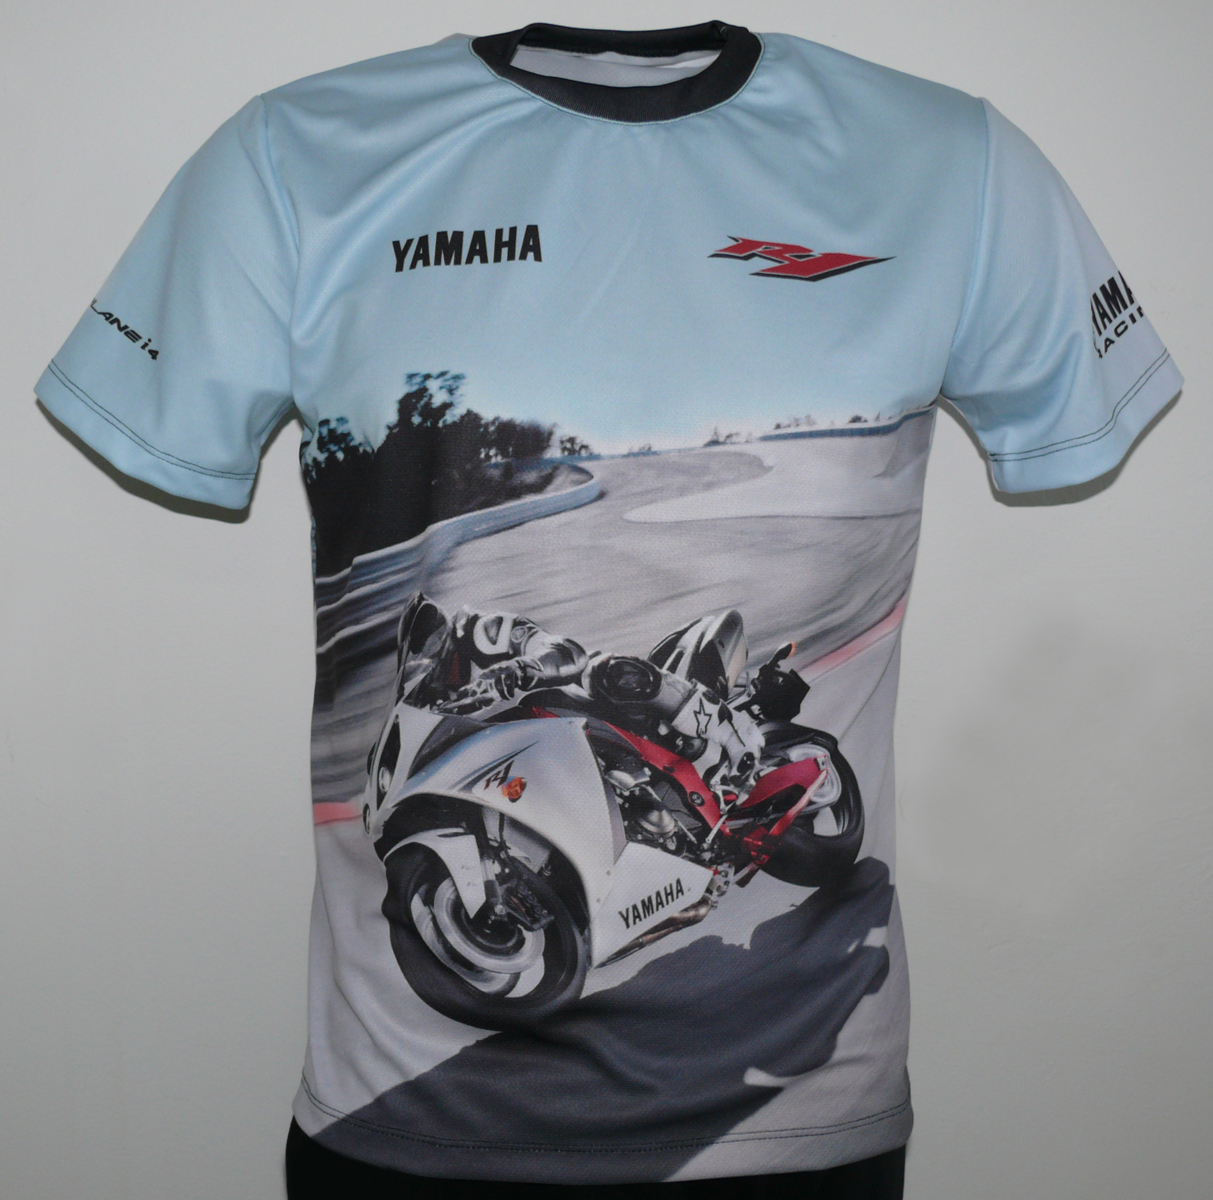 yamaha yzf r1 2009 t shirt with logo and all over printed picture t shirts with all kind of. Black Bedroom Furniture Sets. Home Design Ideas